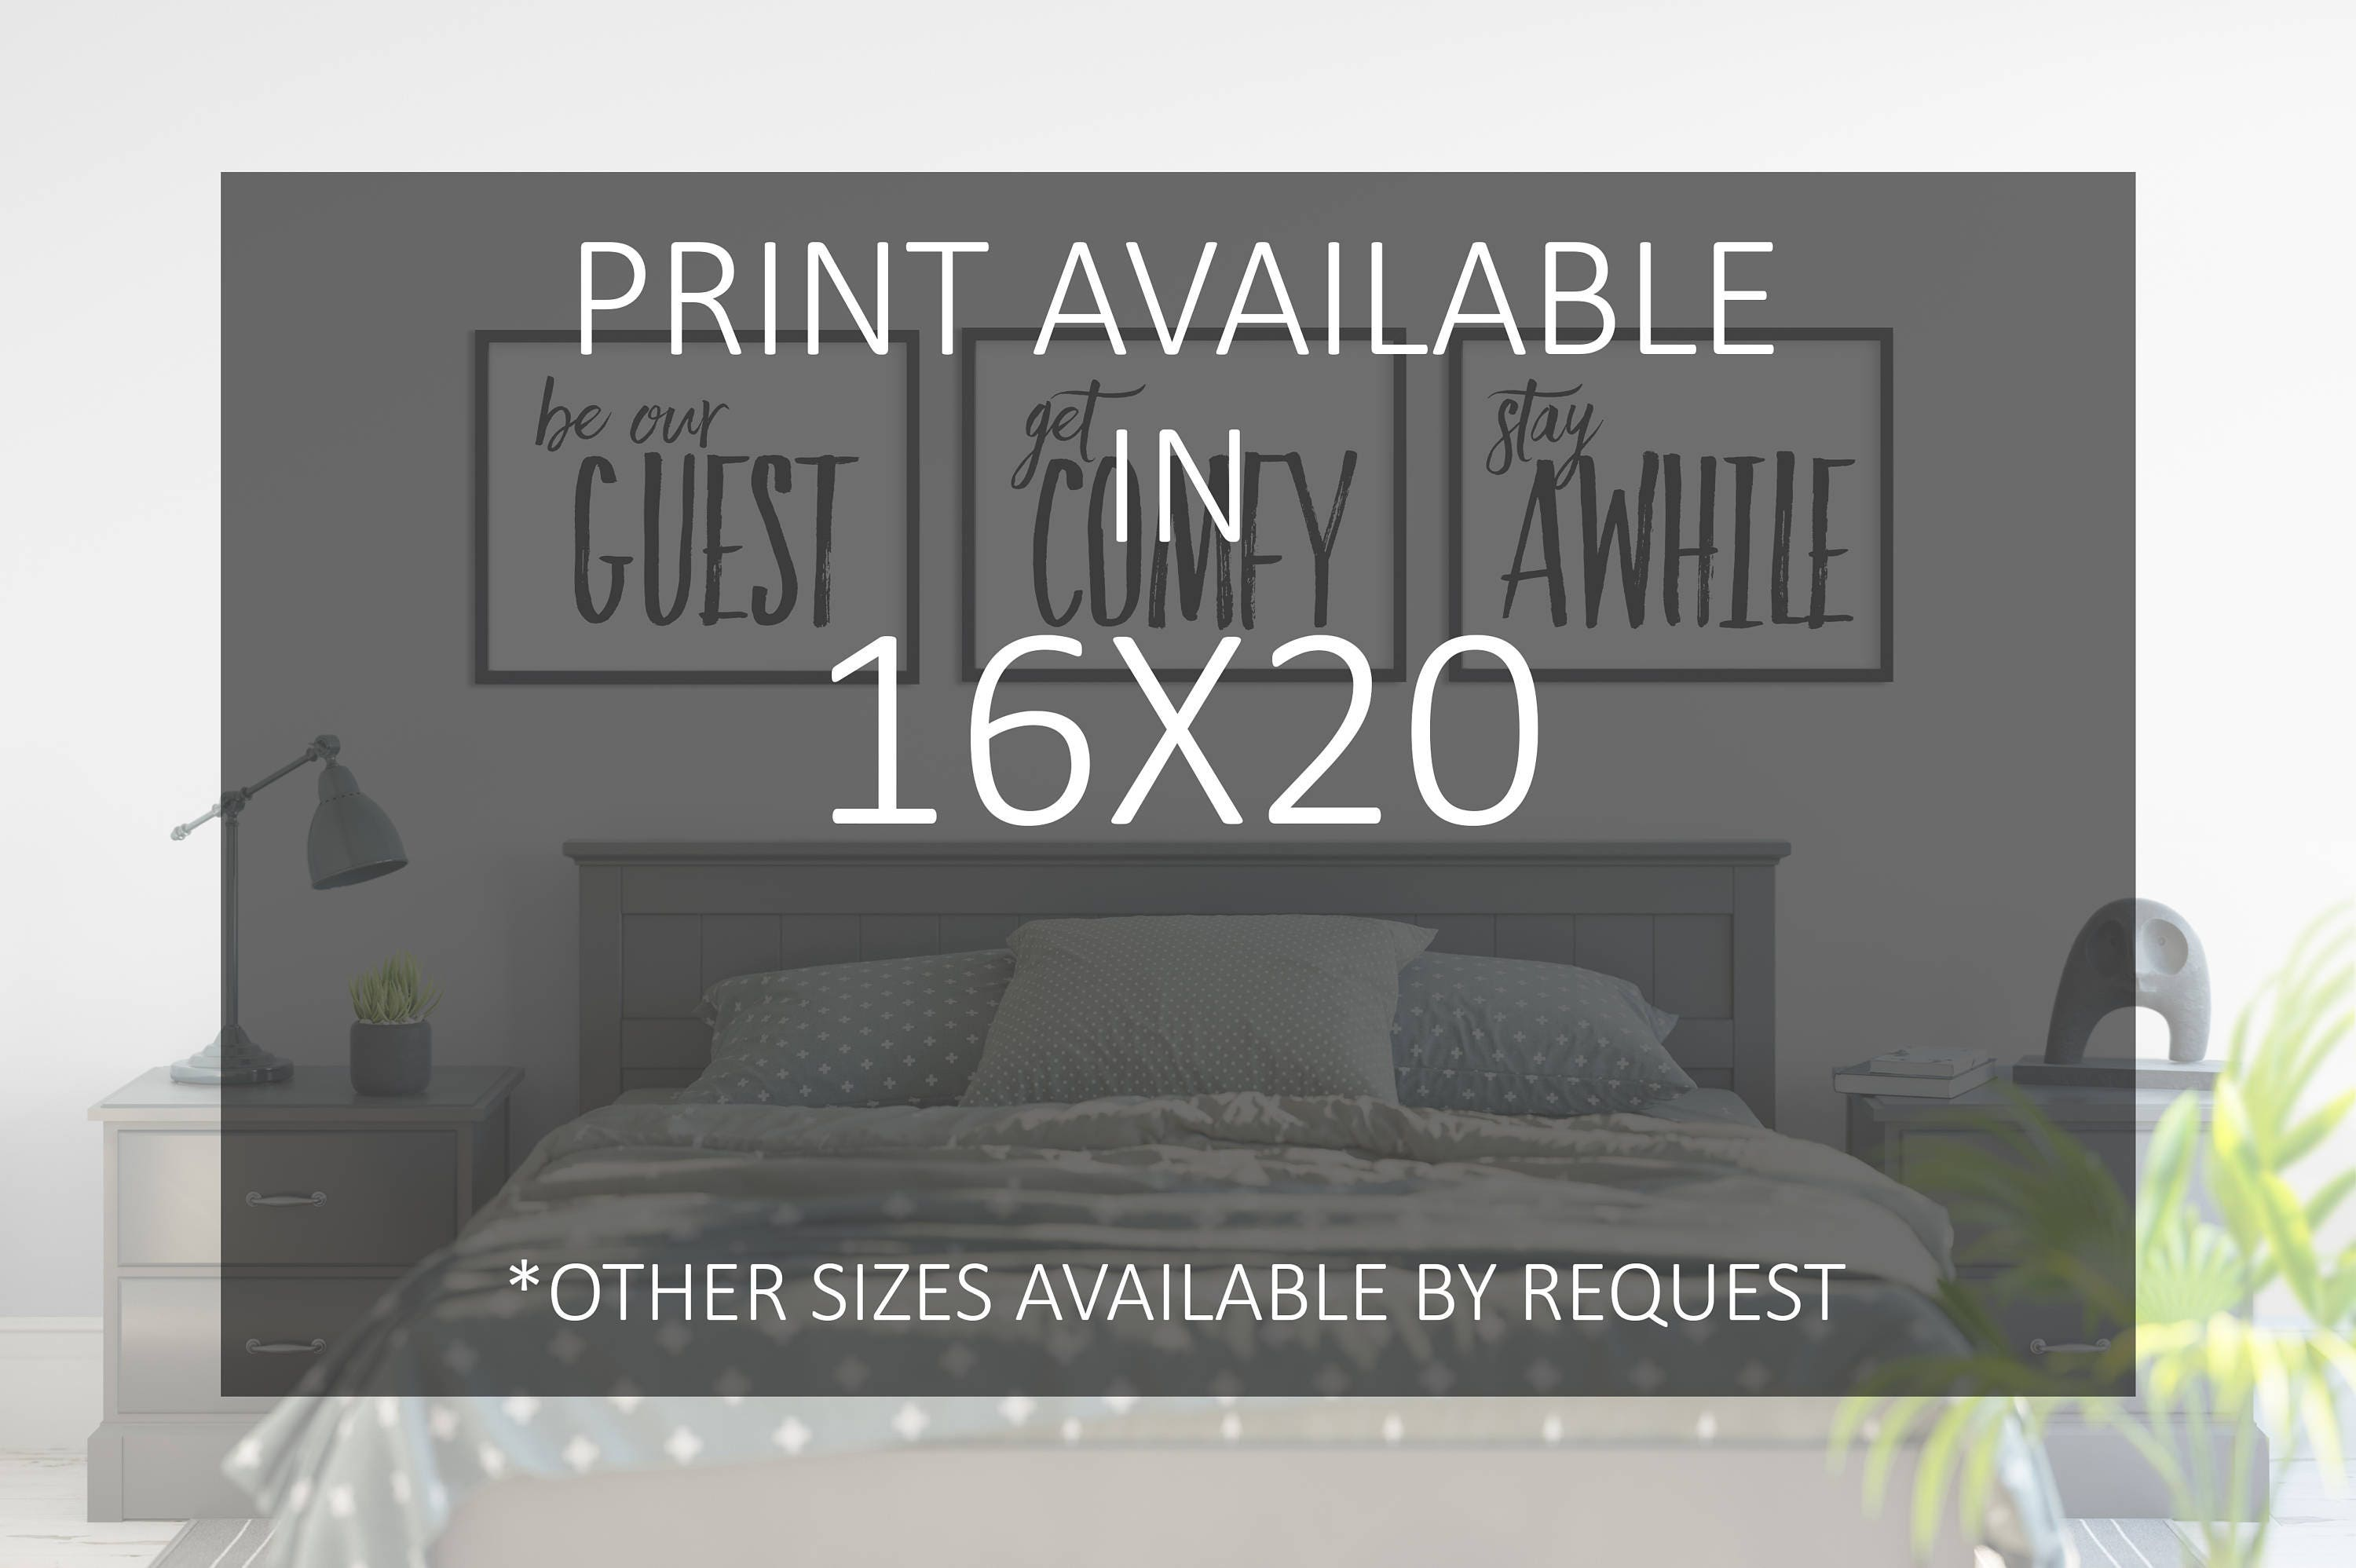 photograph relating to Be Our Guest Printable called Residence Decor 16x20 - Wall Decor - Be Our Visitor - Purchase At ease